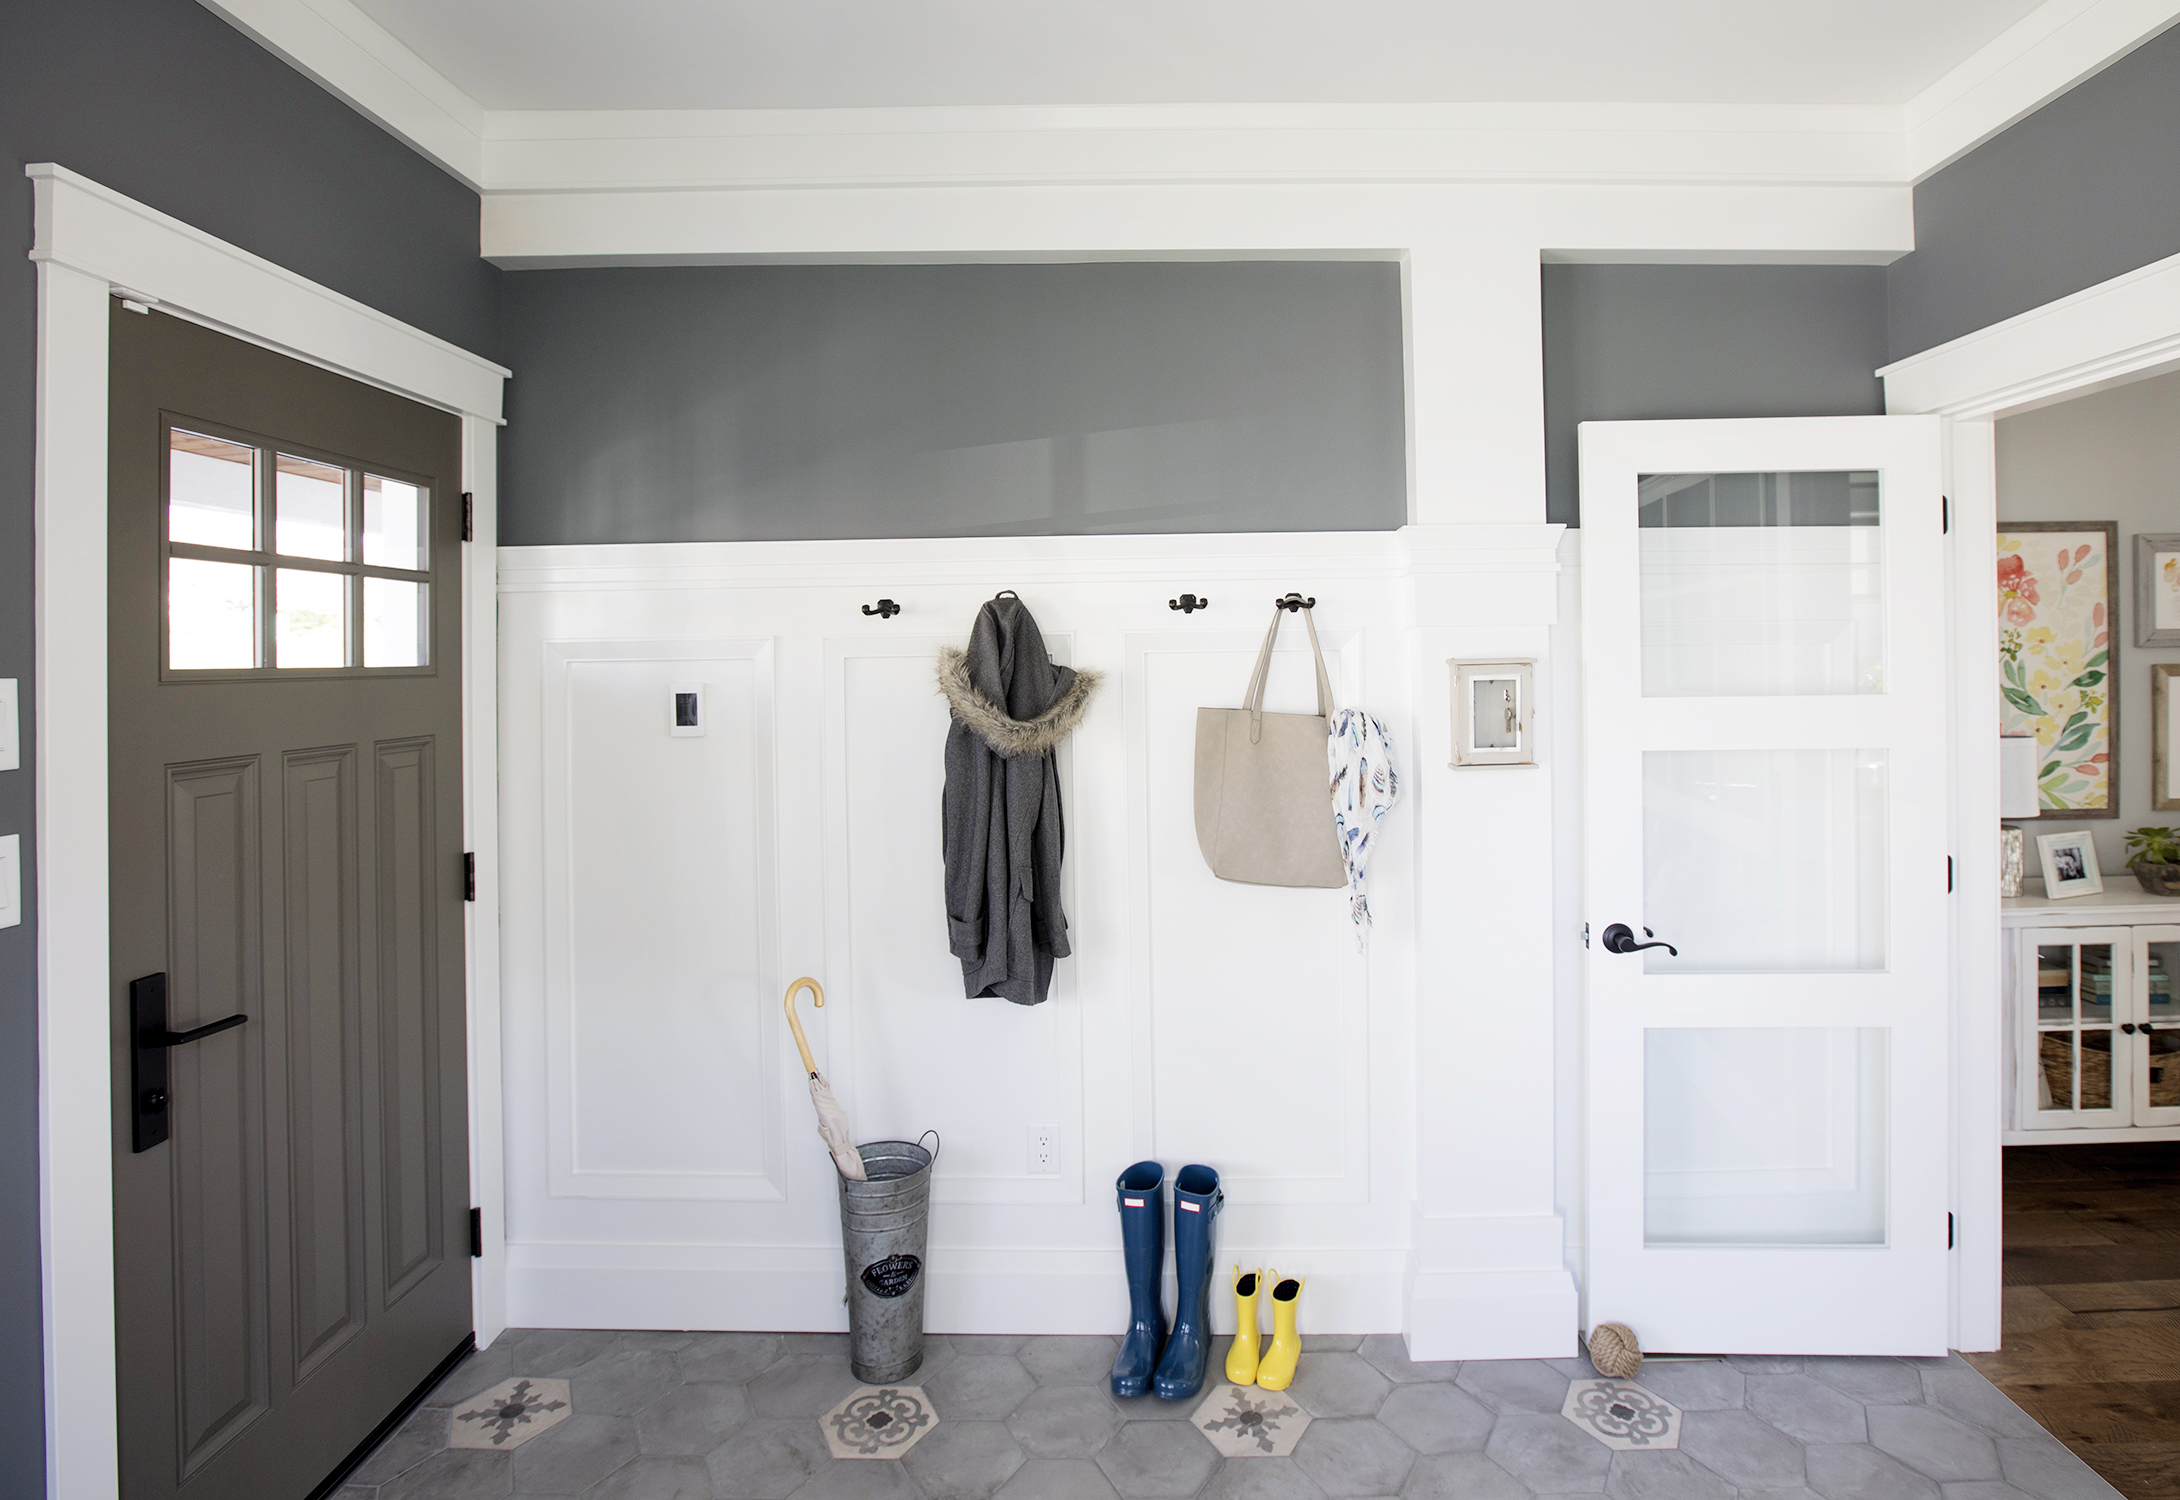 Laila and Dan's new mudroom feature Metre's stunning trim elements on Love It or List It Vancouver. Image Source: HGTV Canada.